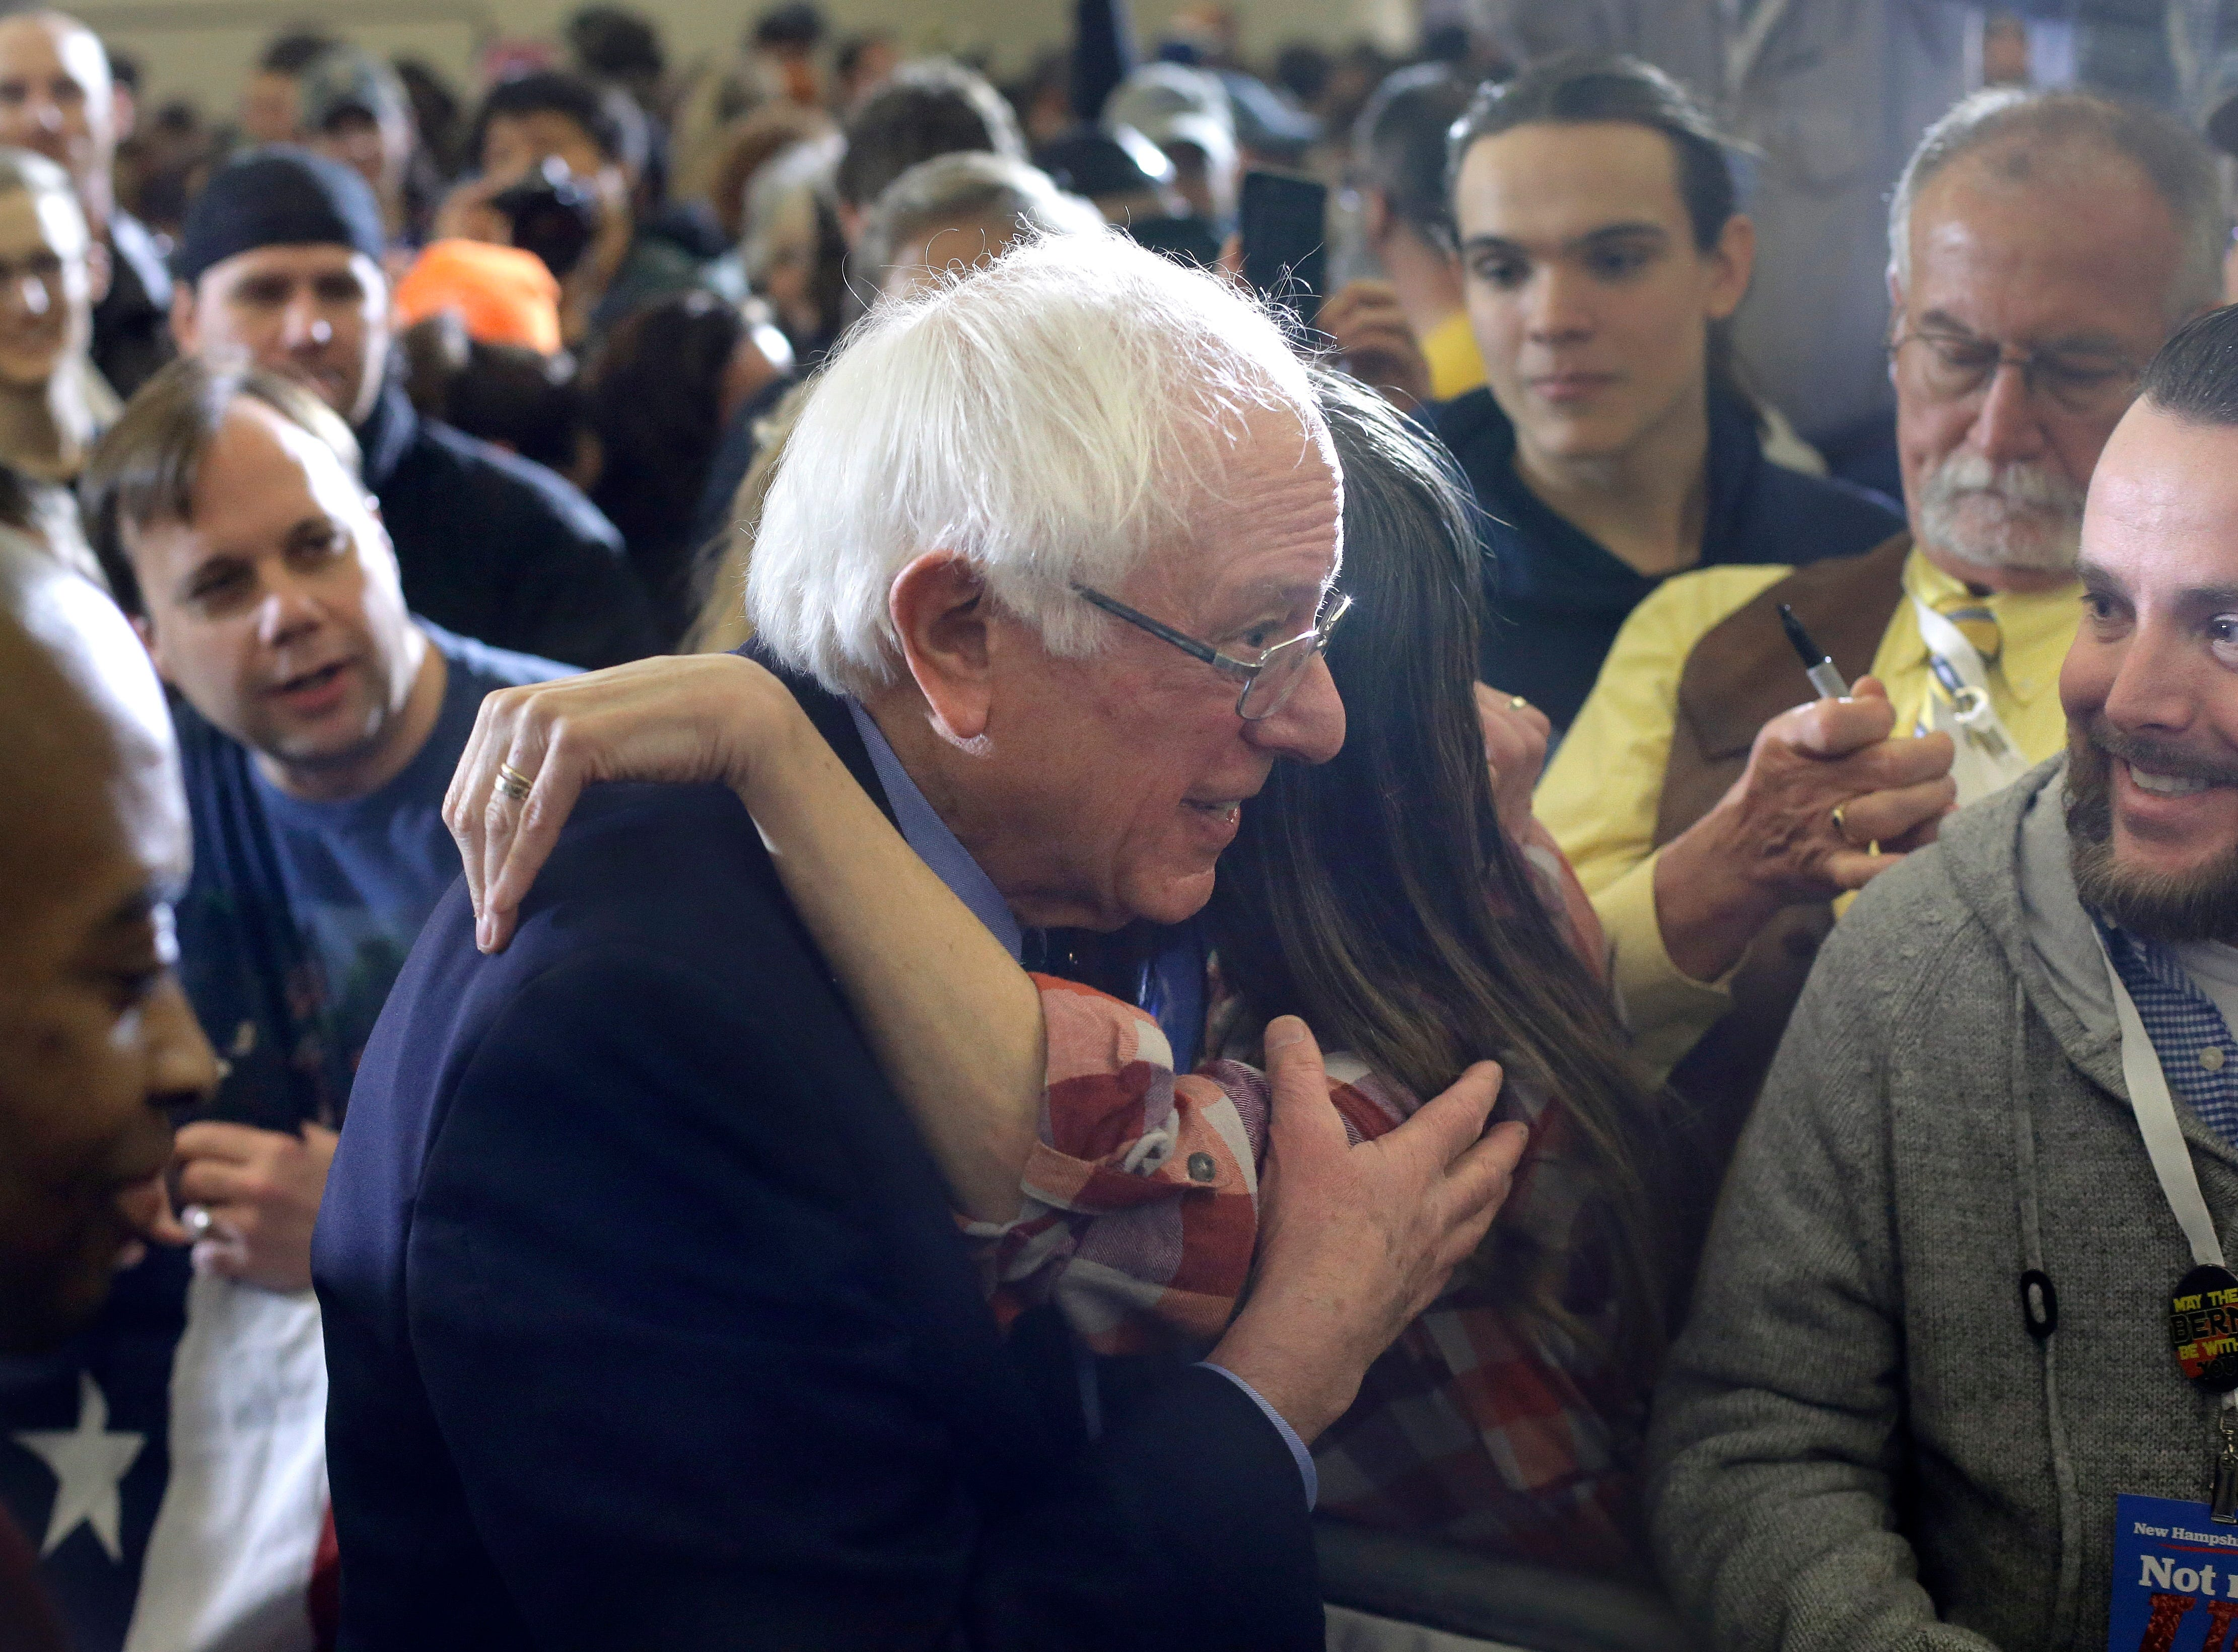 2020 Democratic presidential candidate Sen. Bernie Sanders, center, greets people in the audience after addressing a rally during a campaign stop, Sunday, March 10, 2019, in Concord, N.H.